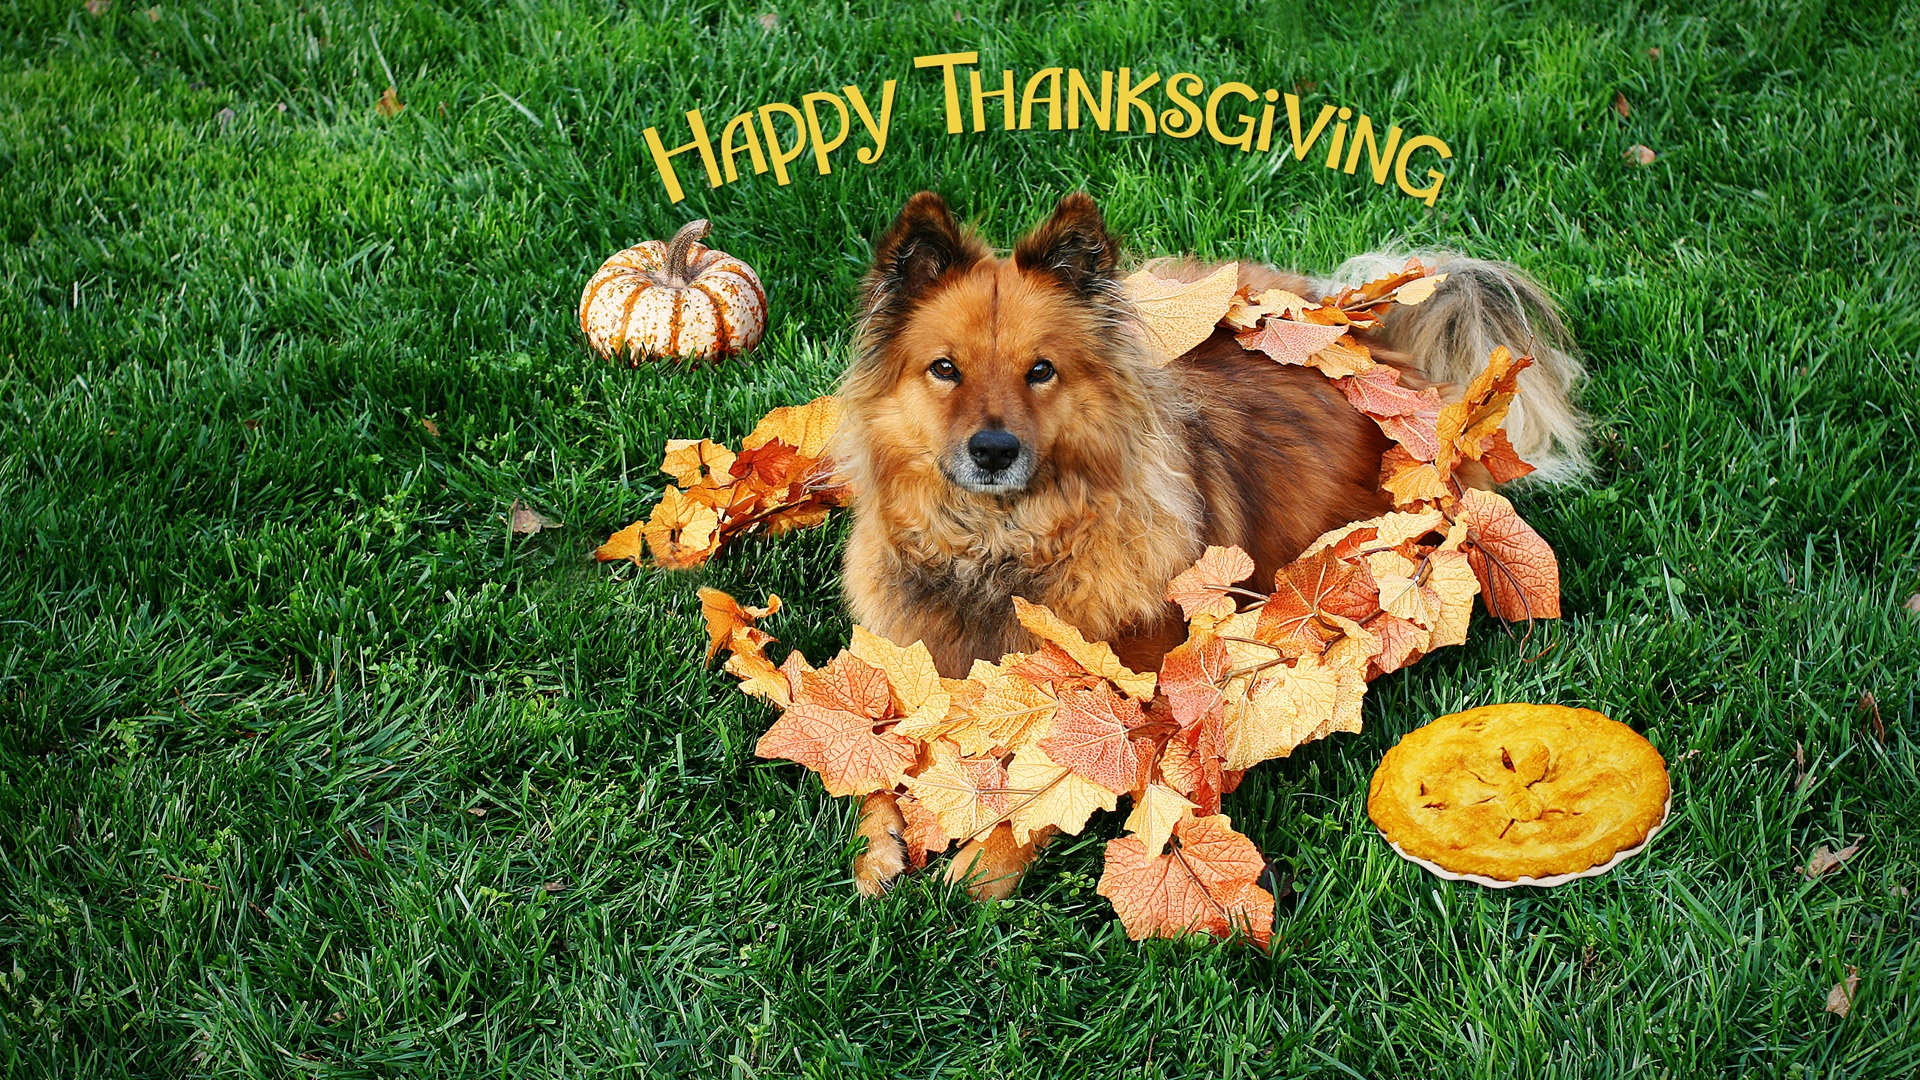 Image Go back to Thanksgiving Desktop wallpapers backgrounds 1920x1080